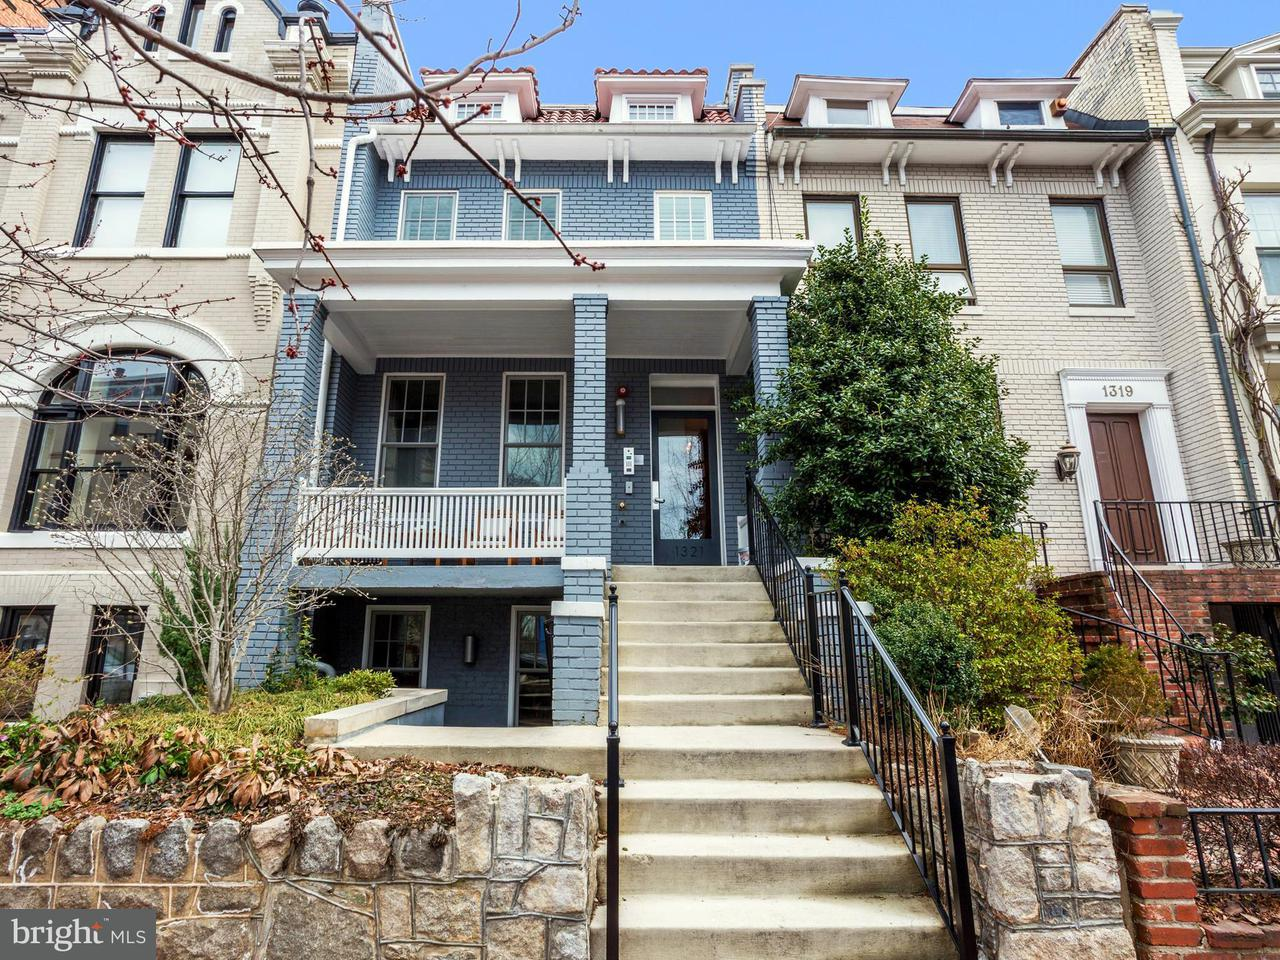 Condominium for Sale at 1321 21st St NW #5 Washington, District Of Columbia 20036 United States